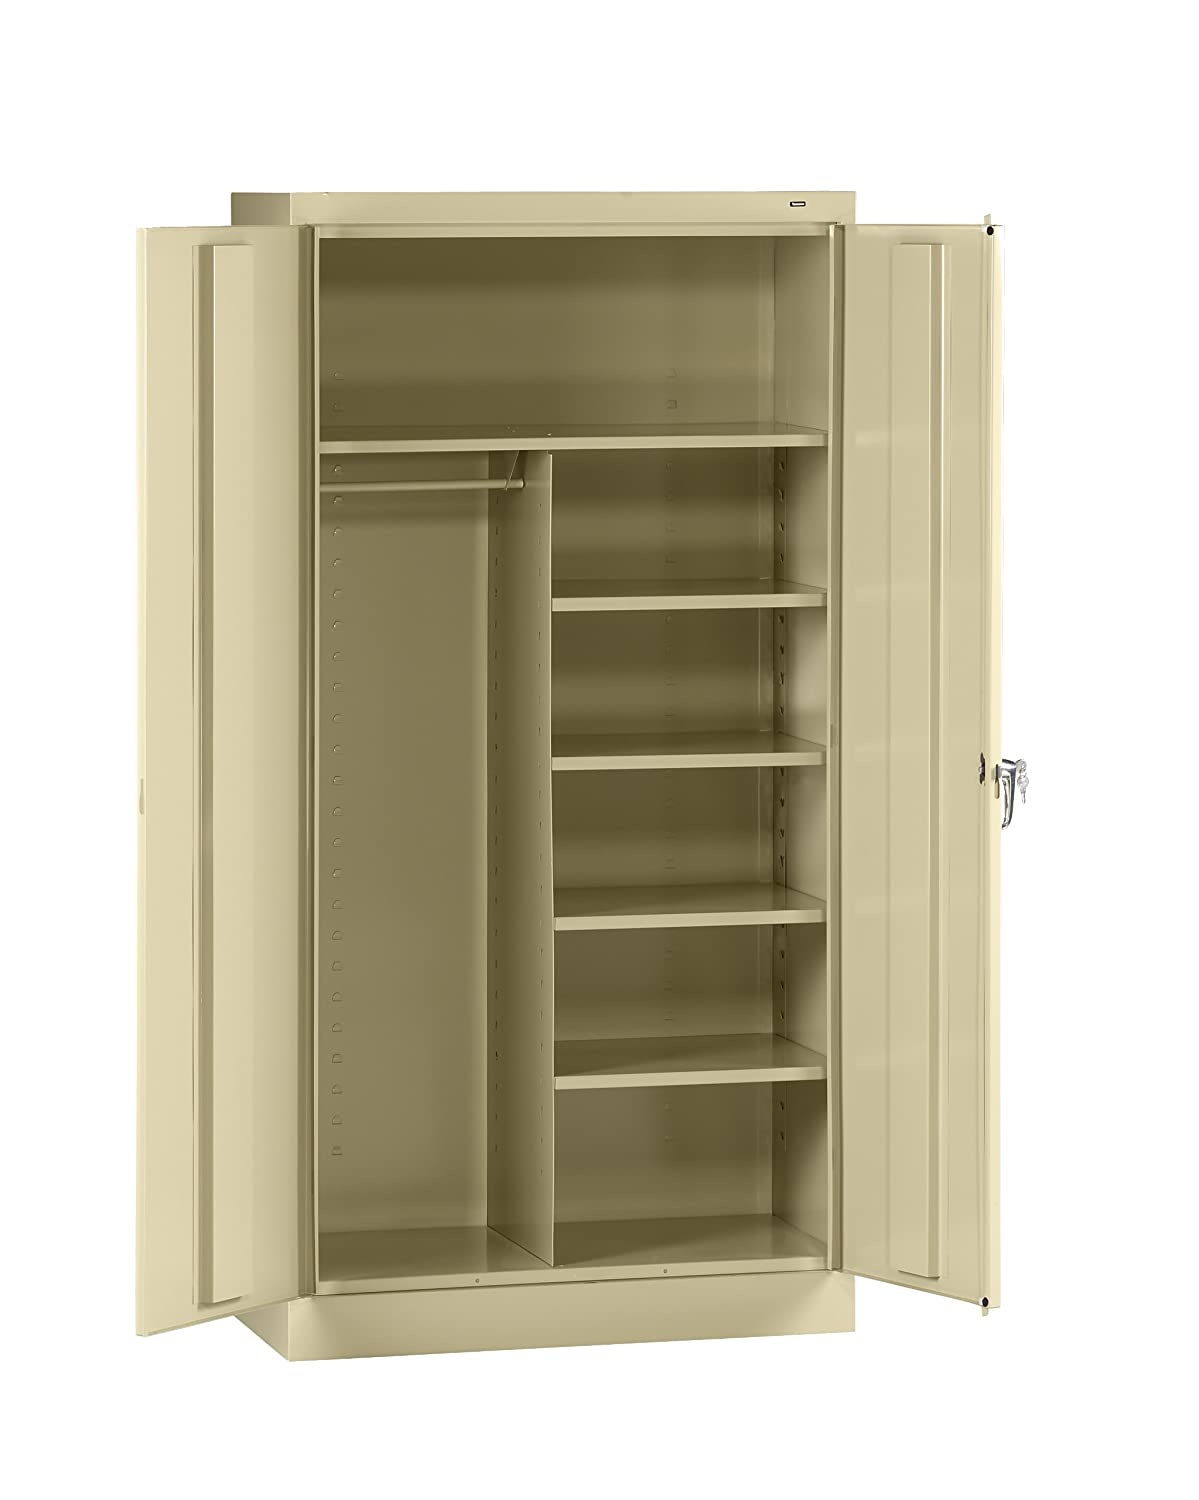 "Tennsco 7214 24 Gauge Steel Standard Welded Combination Storage Cabinet, 5 Shelves, 150 lbs Capacity per Shelf (50 lbs per half shelf), 36"" Width x 72"" Height x 18"" Depth, Putty"